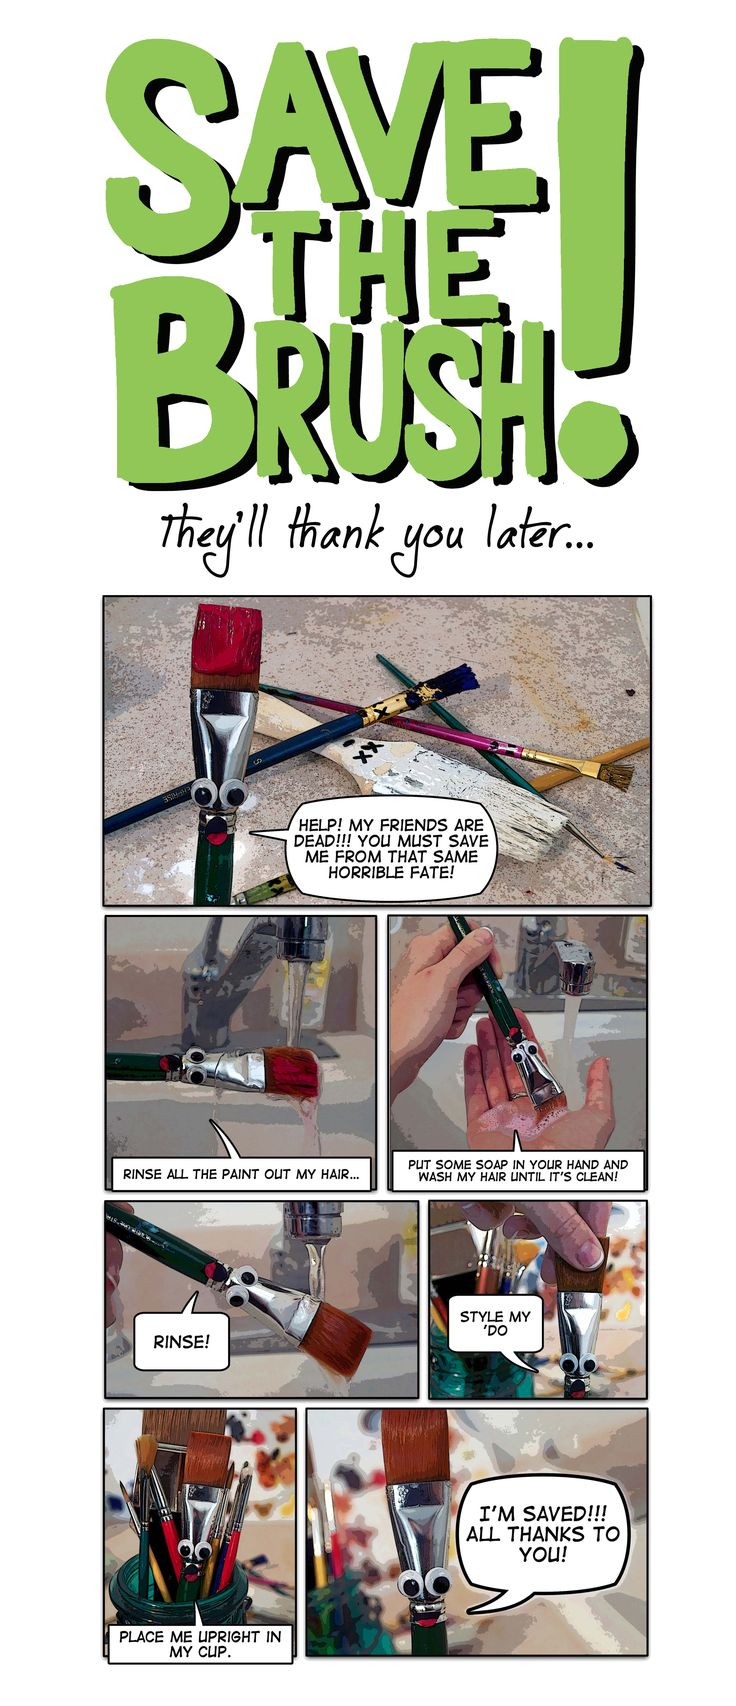 Poster I made to hang above sinks to address my biggest pet peeve - dirty brushes!